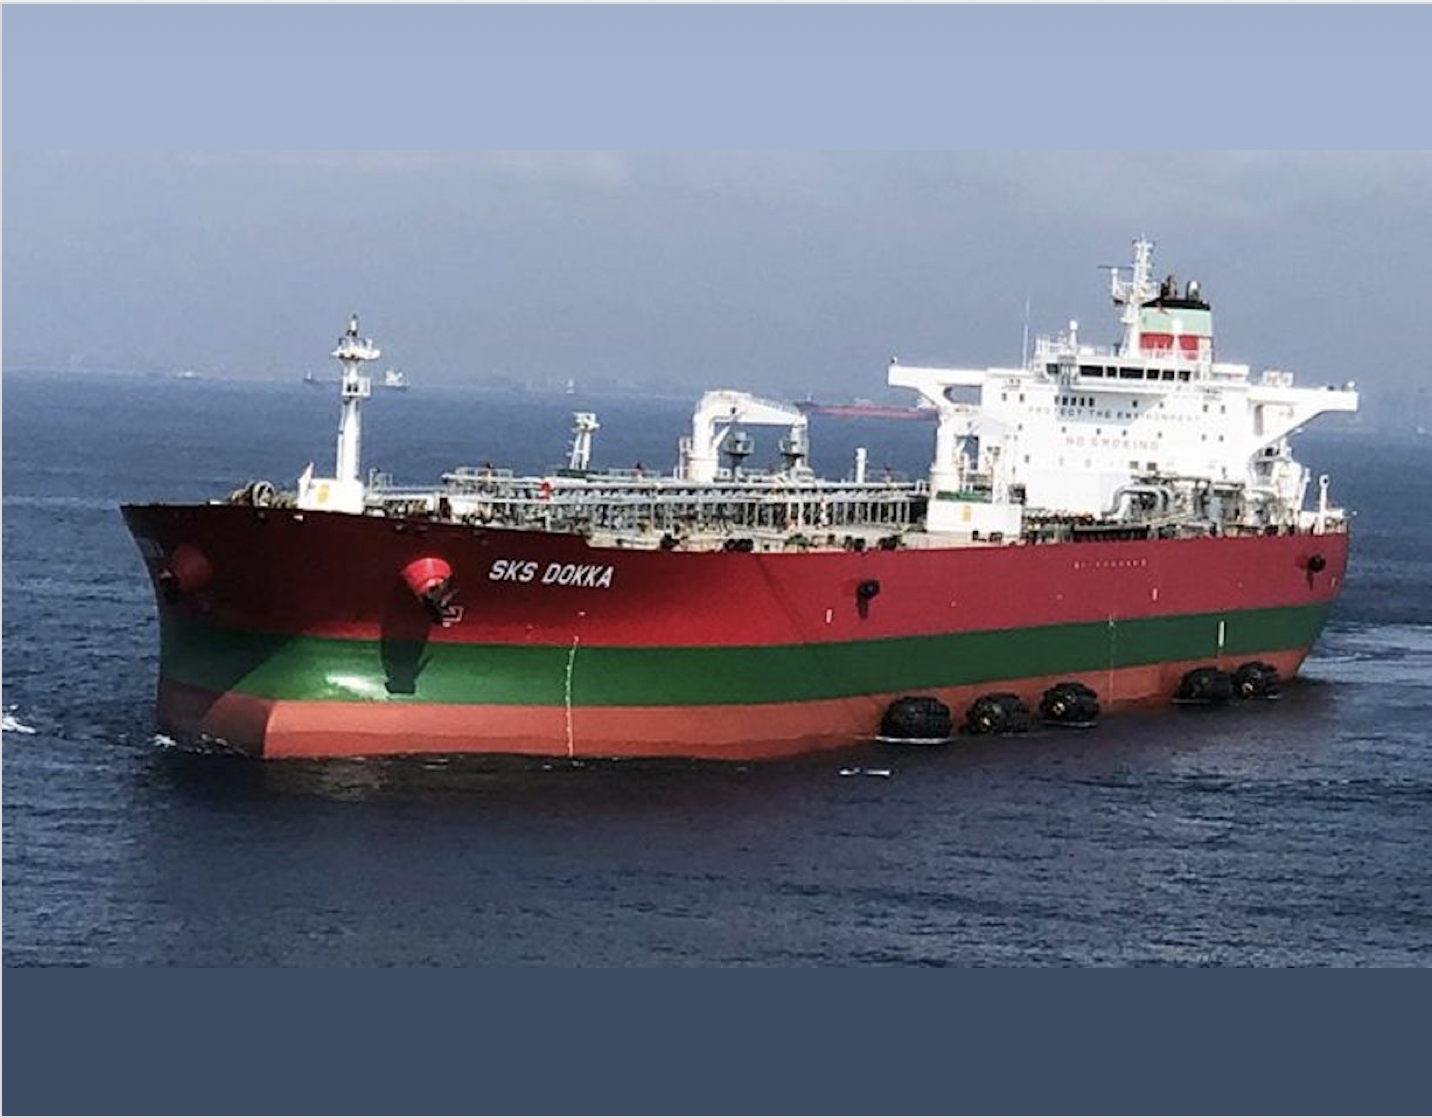 Monjasa welcomes 'SKS Dokka' as new floating storage for West Africa bunker operations